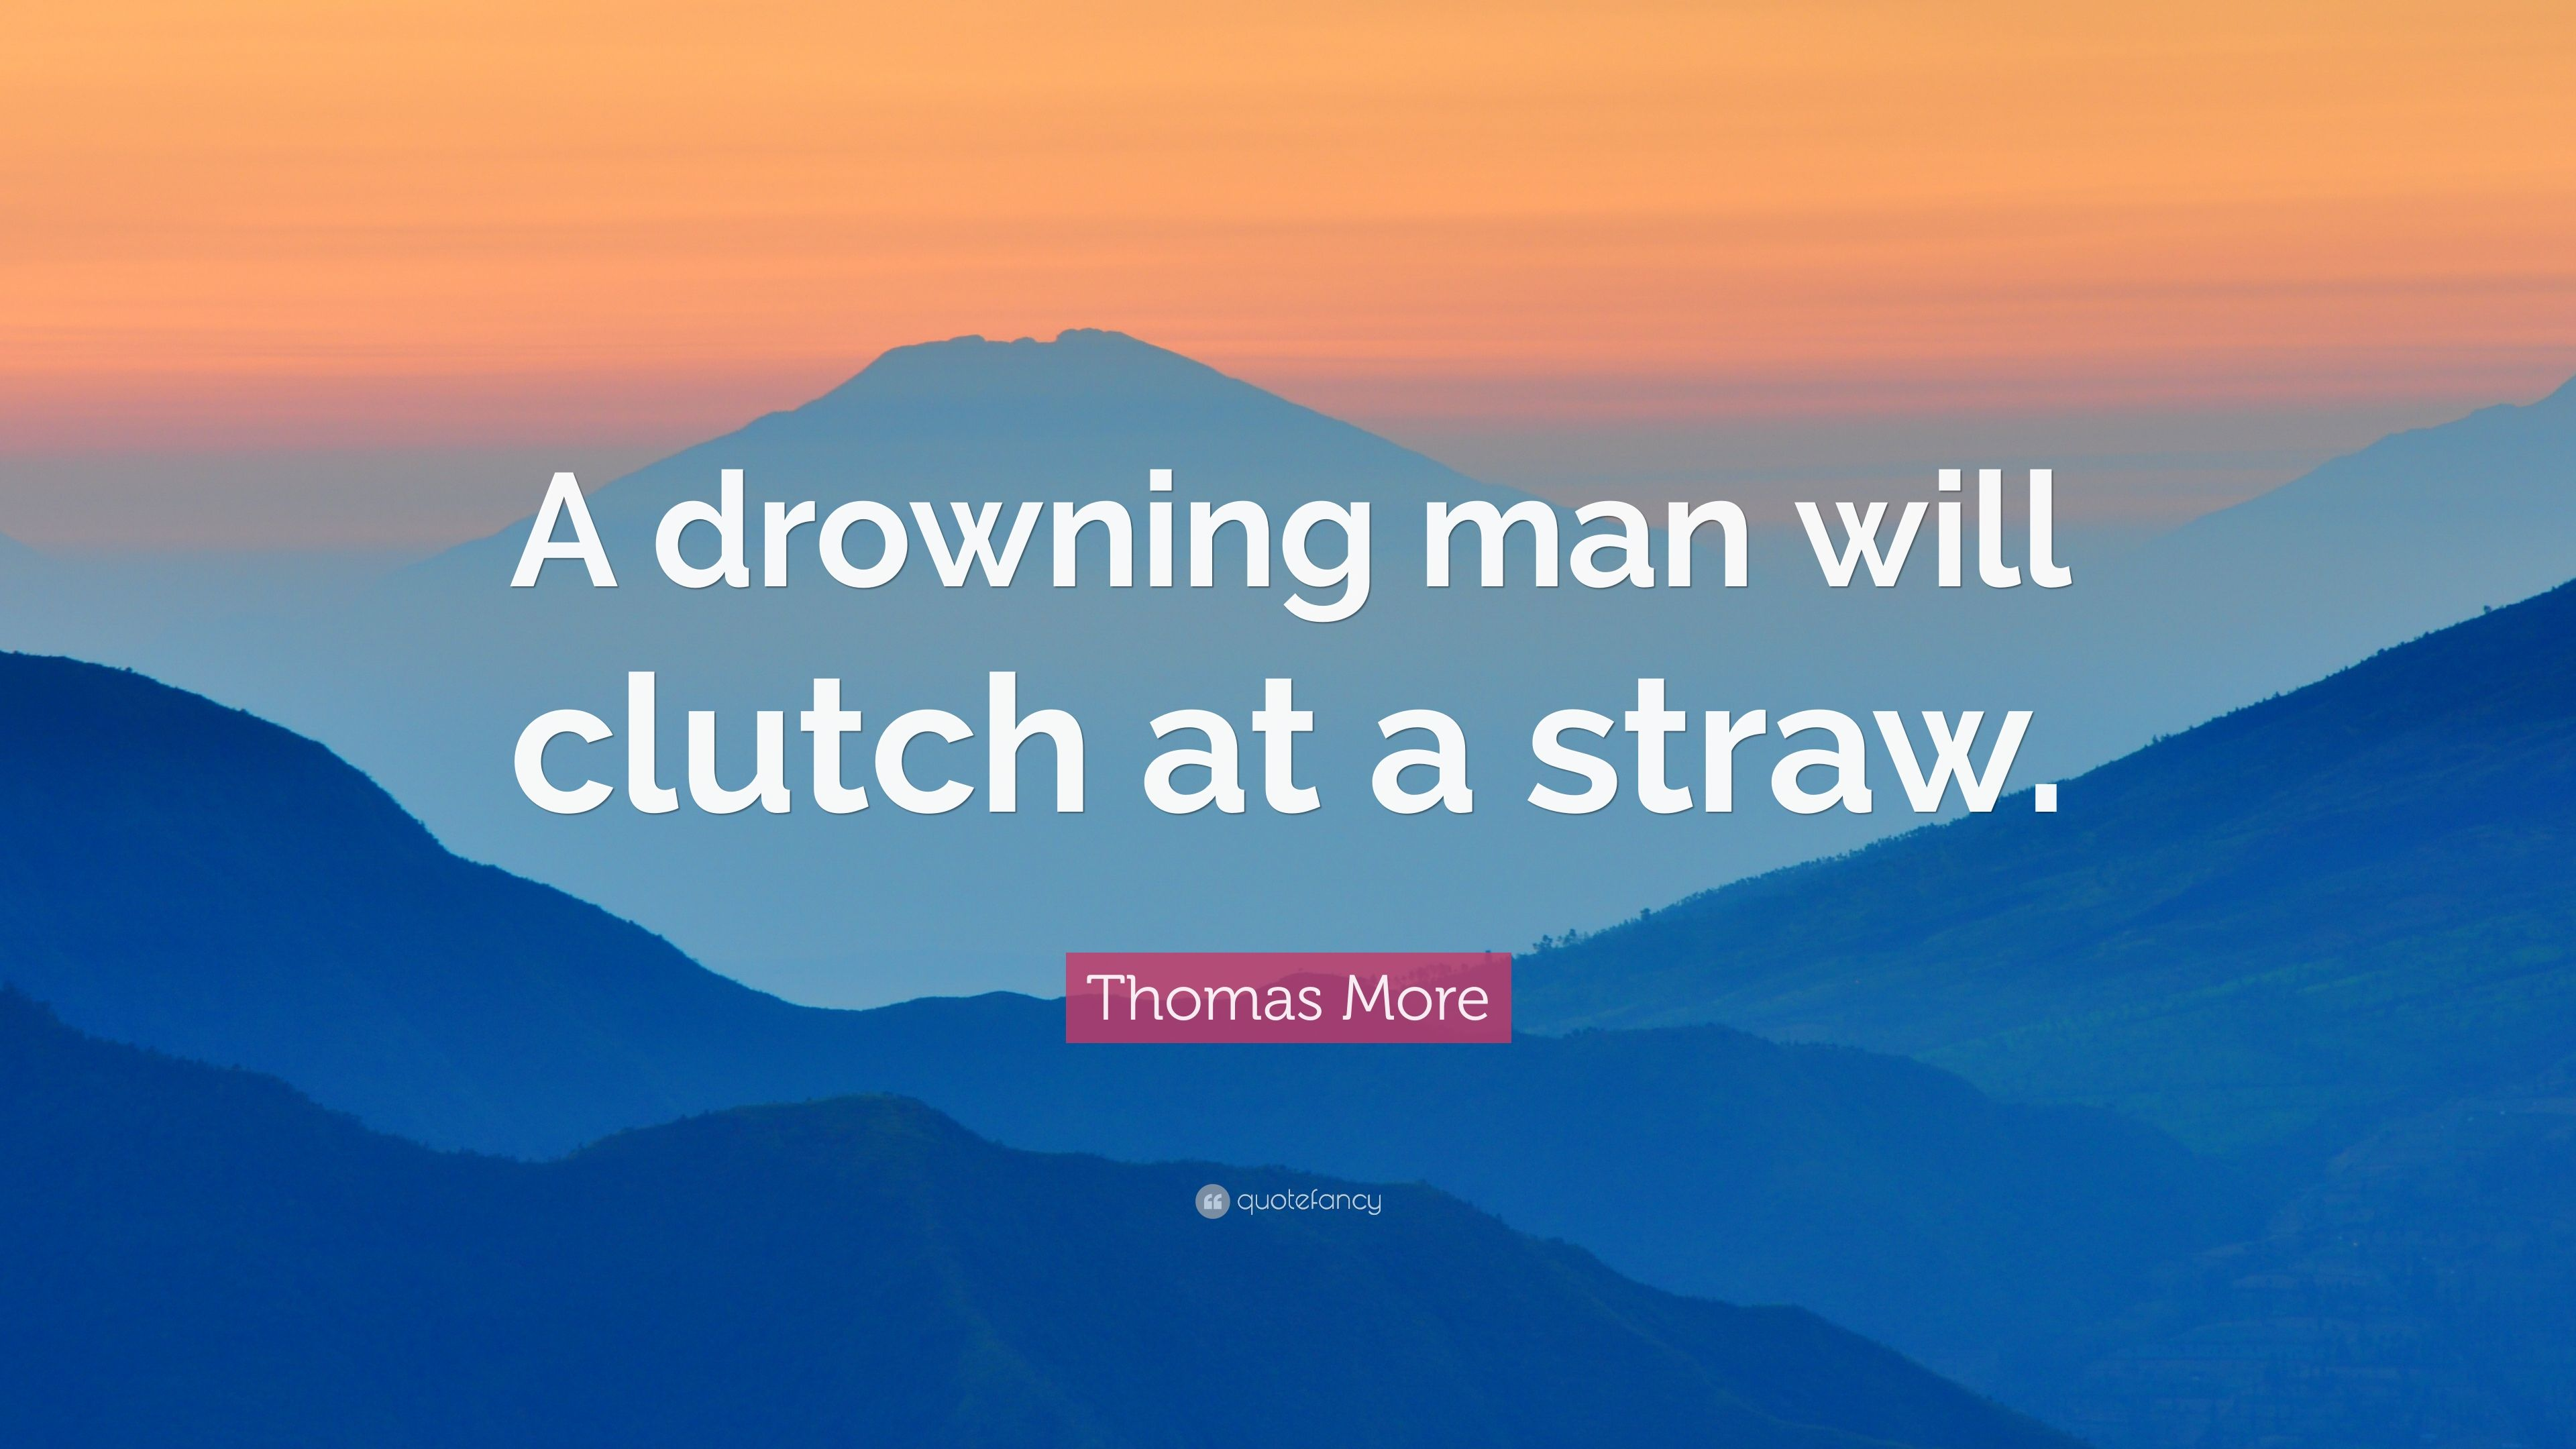 a drowning man catches at a straw essay writer